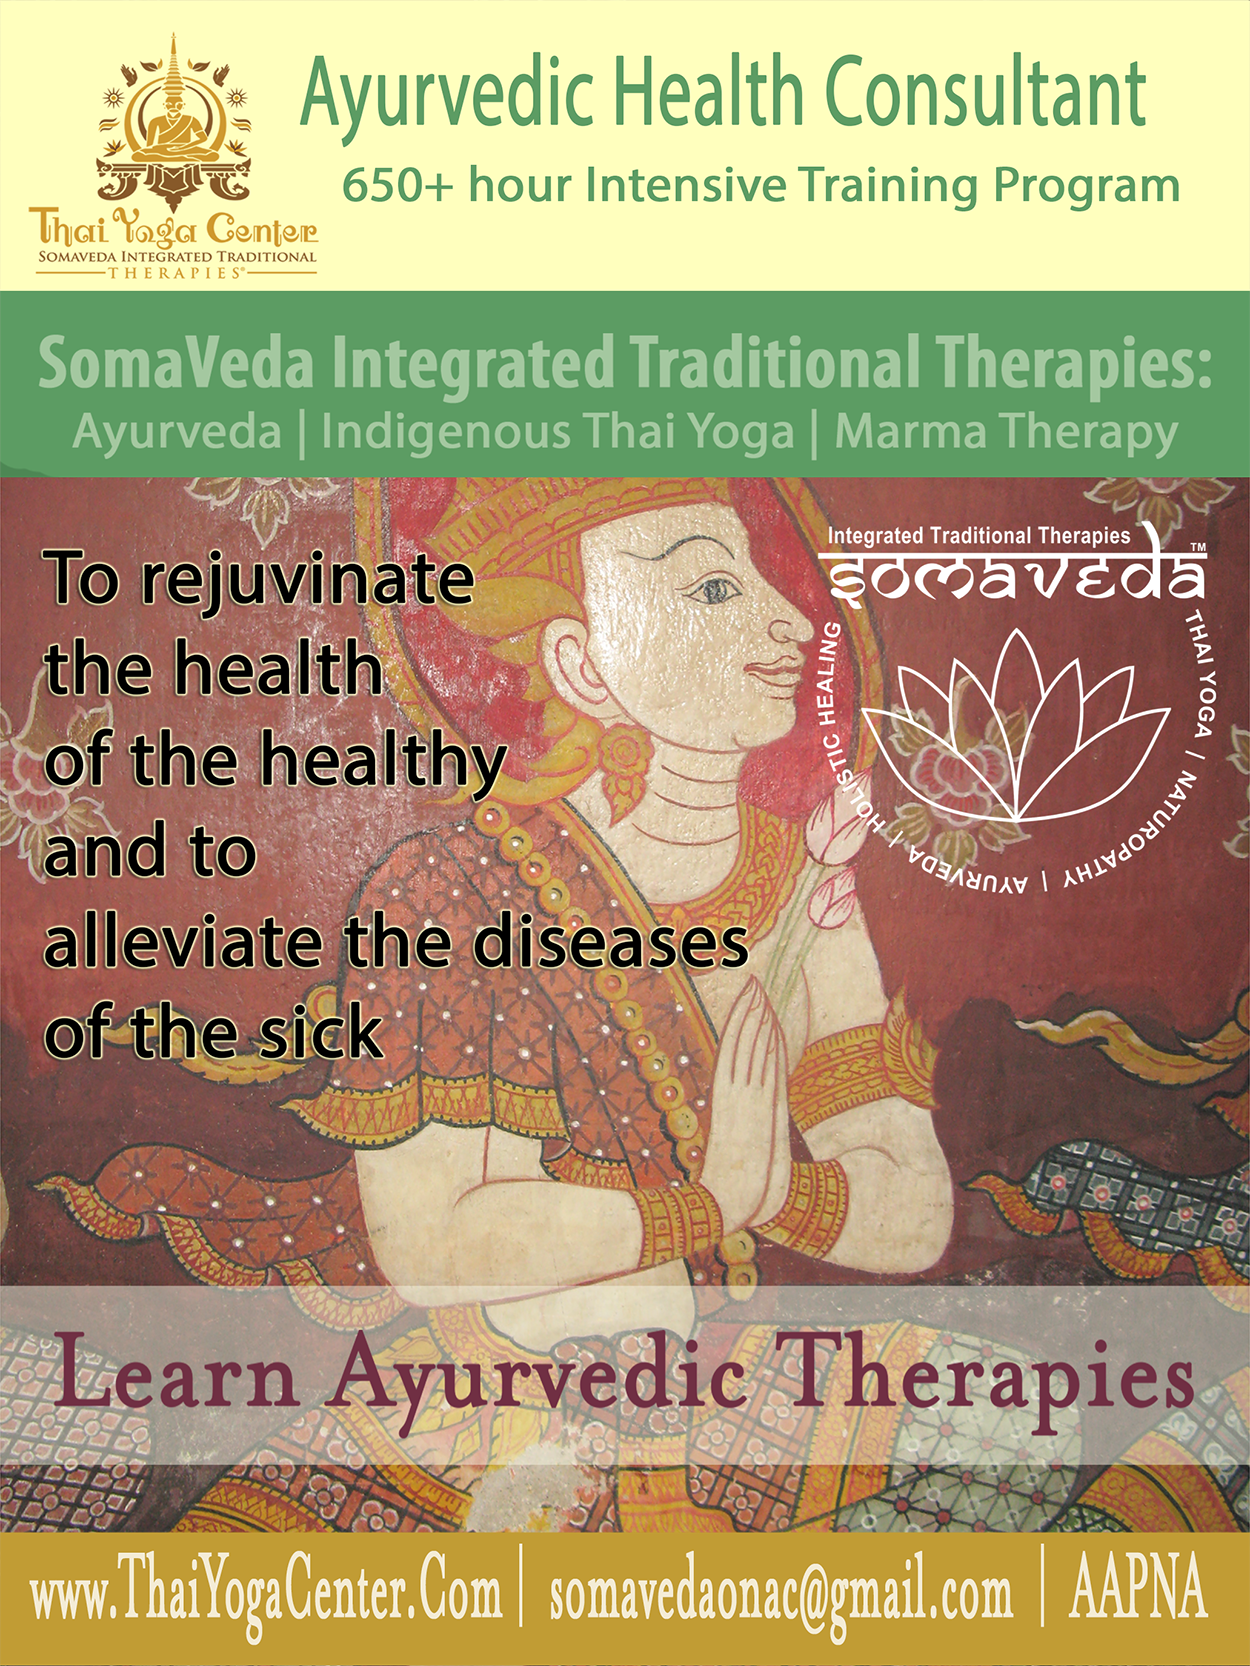 Ayurveda Health Consultant